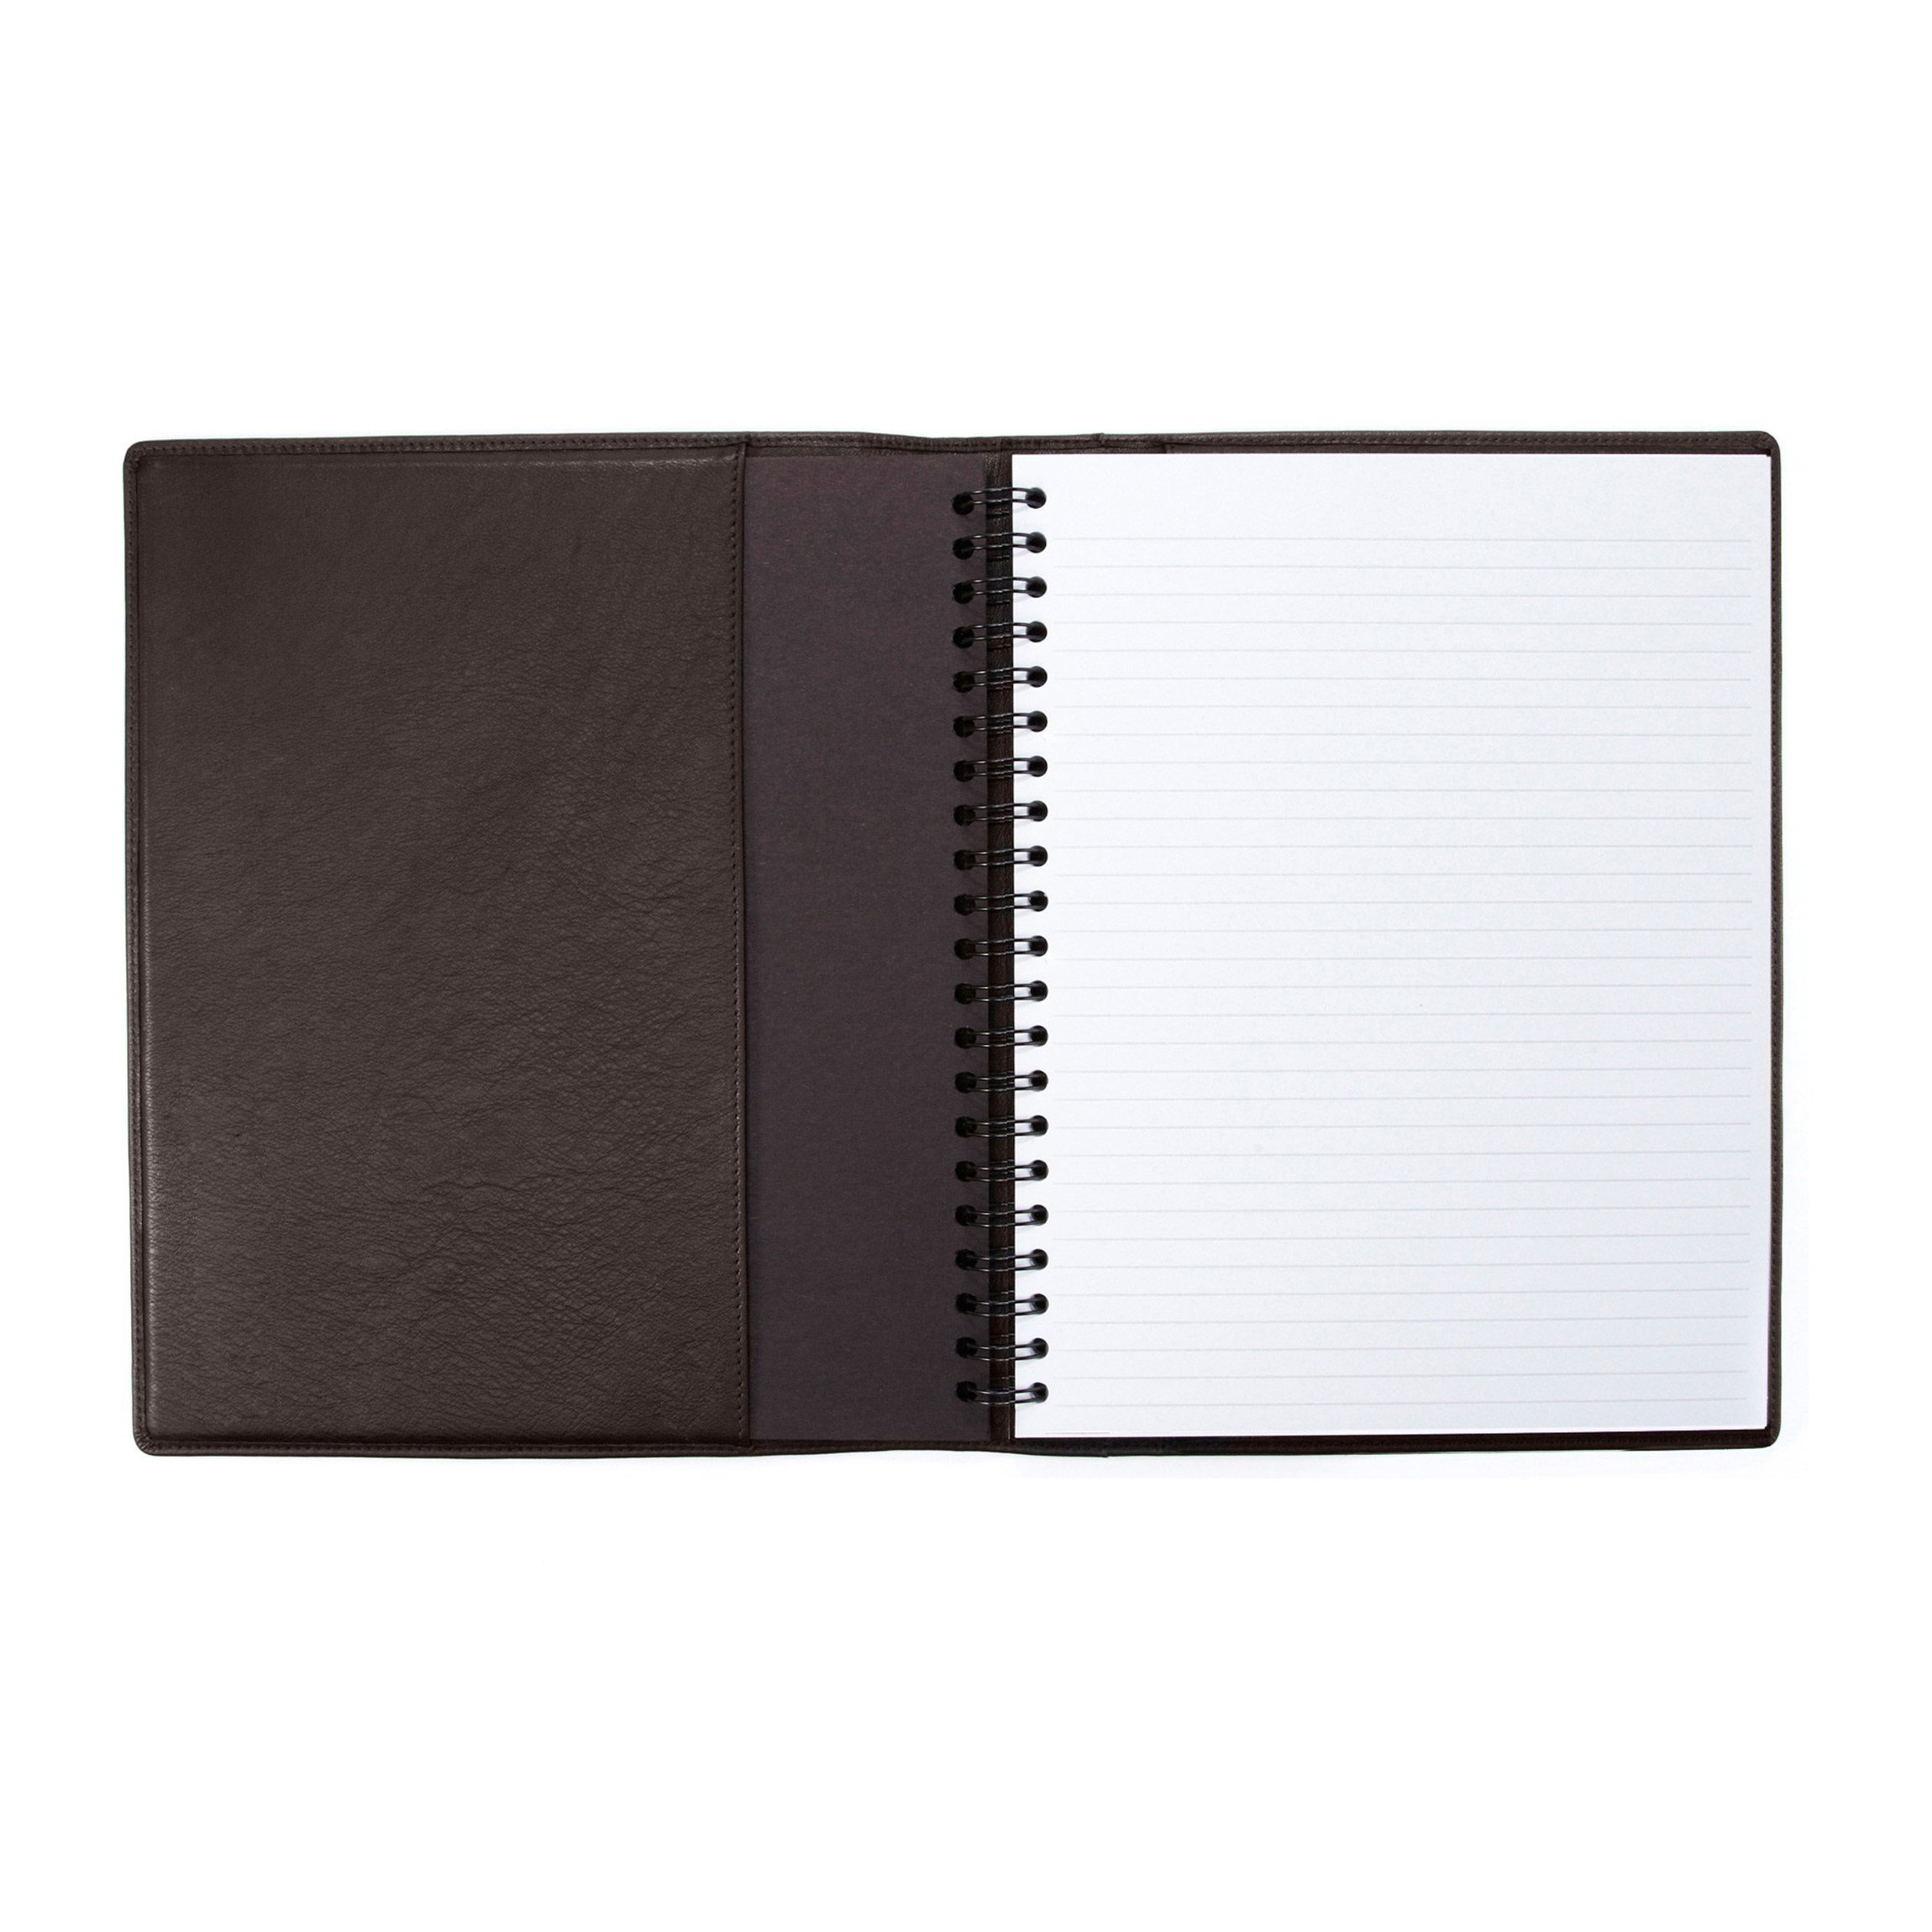 Large Notebook - Full Grain Leather - Chocolate Brown (brown)